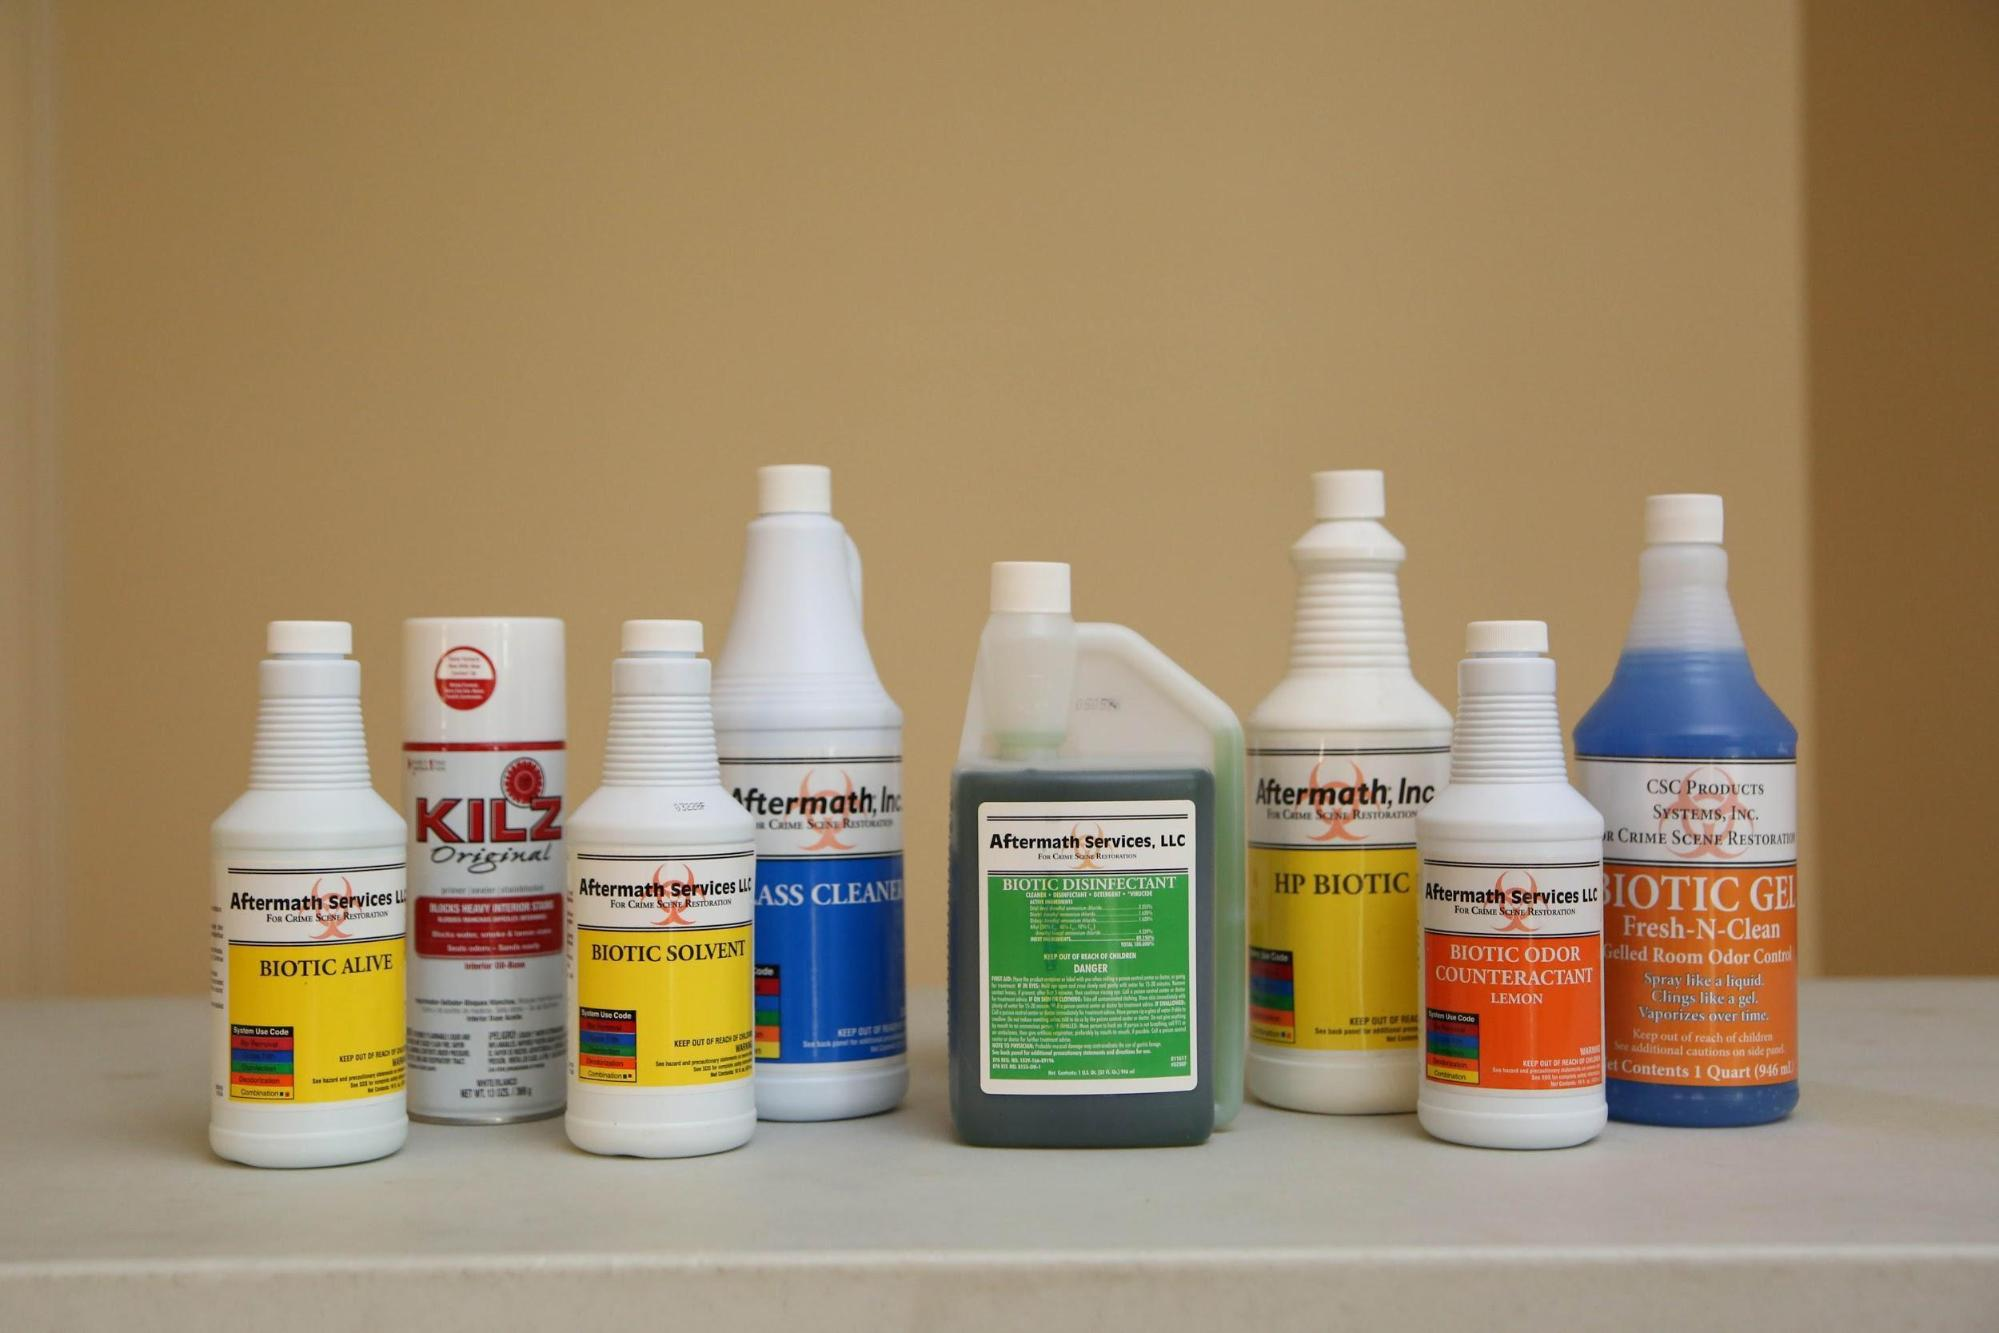 image of cleaning products on a table